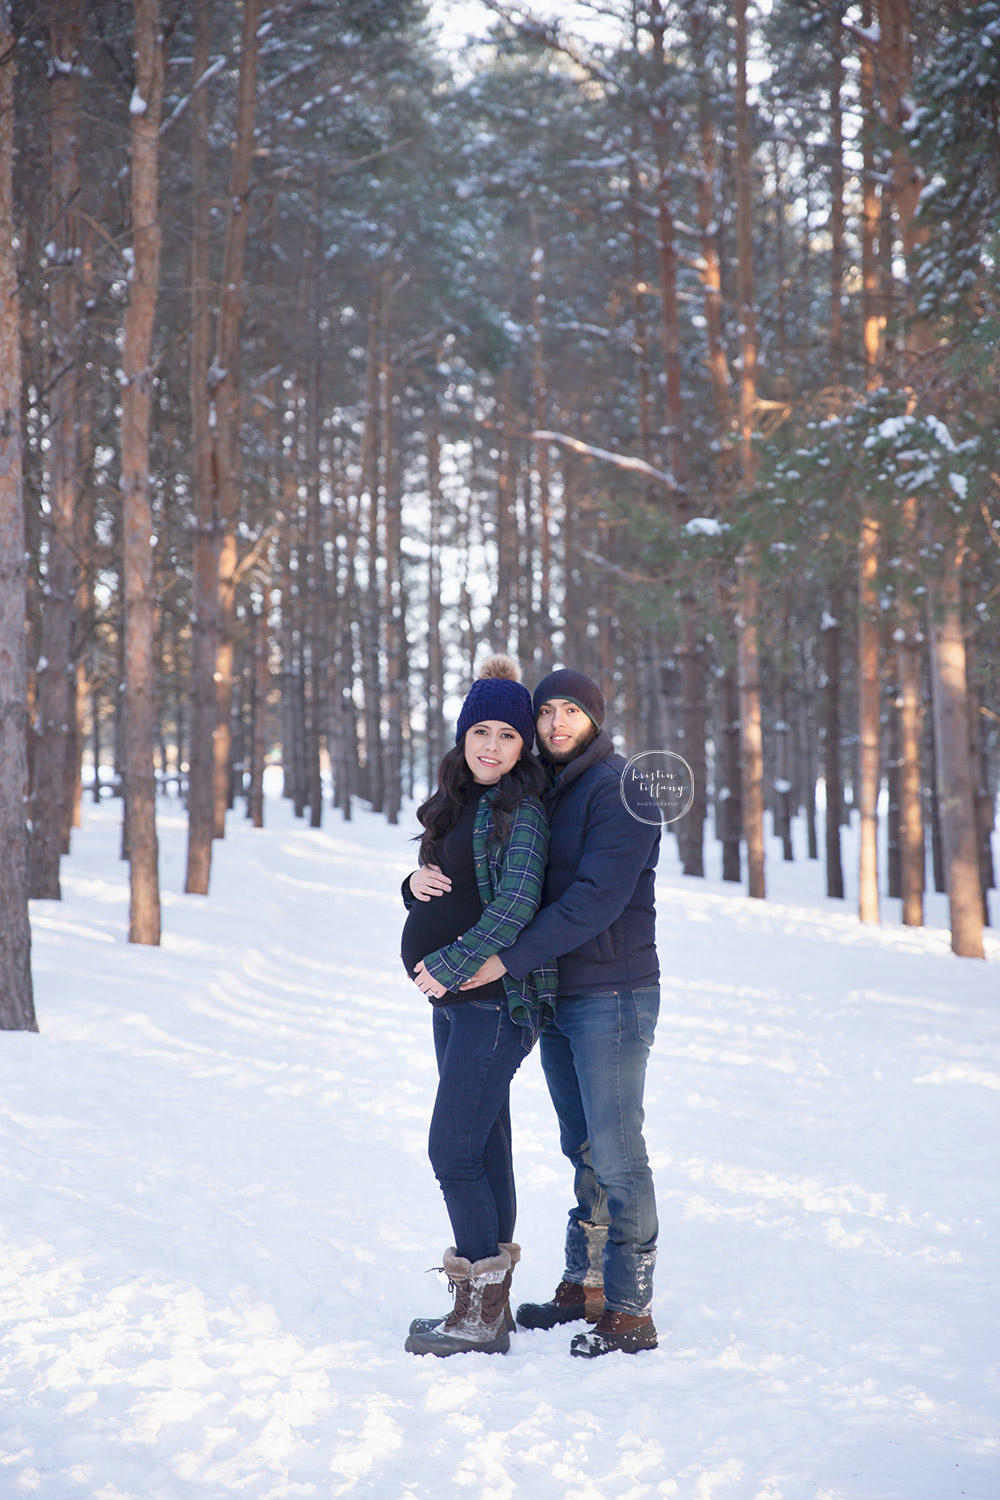 a maternity photo taken in the snowy woods